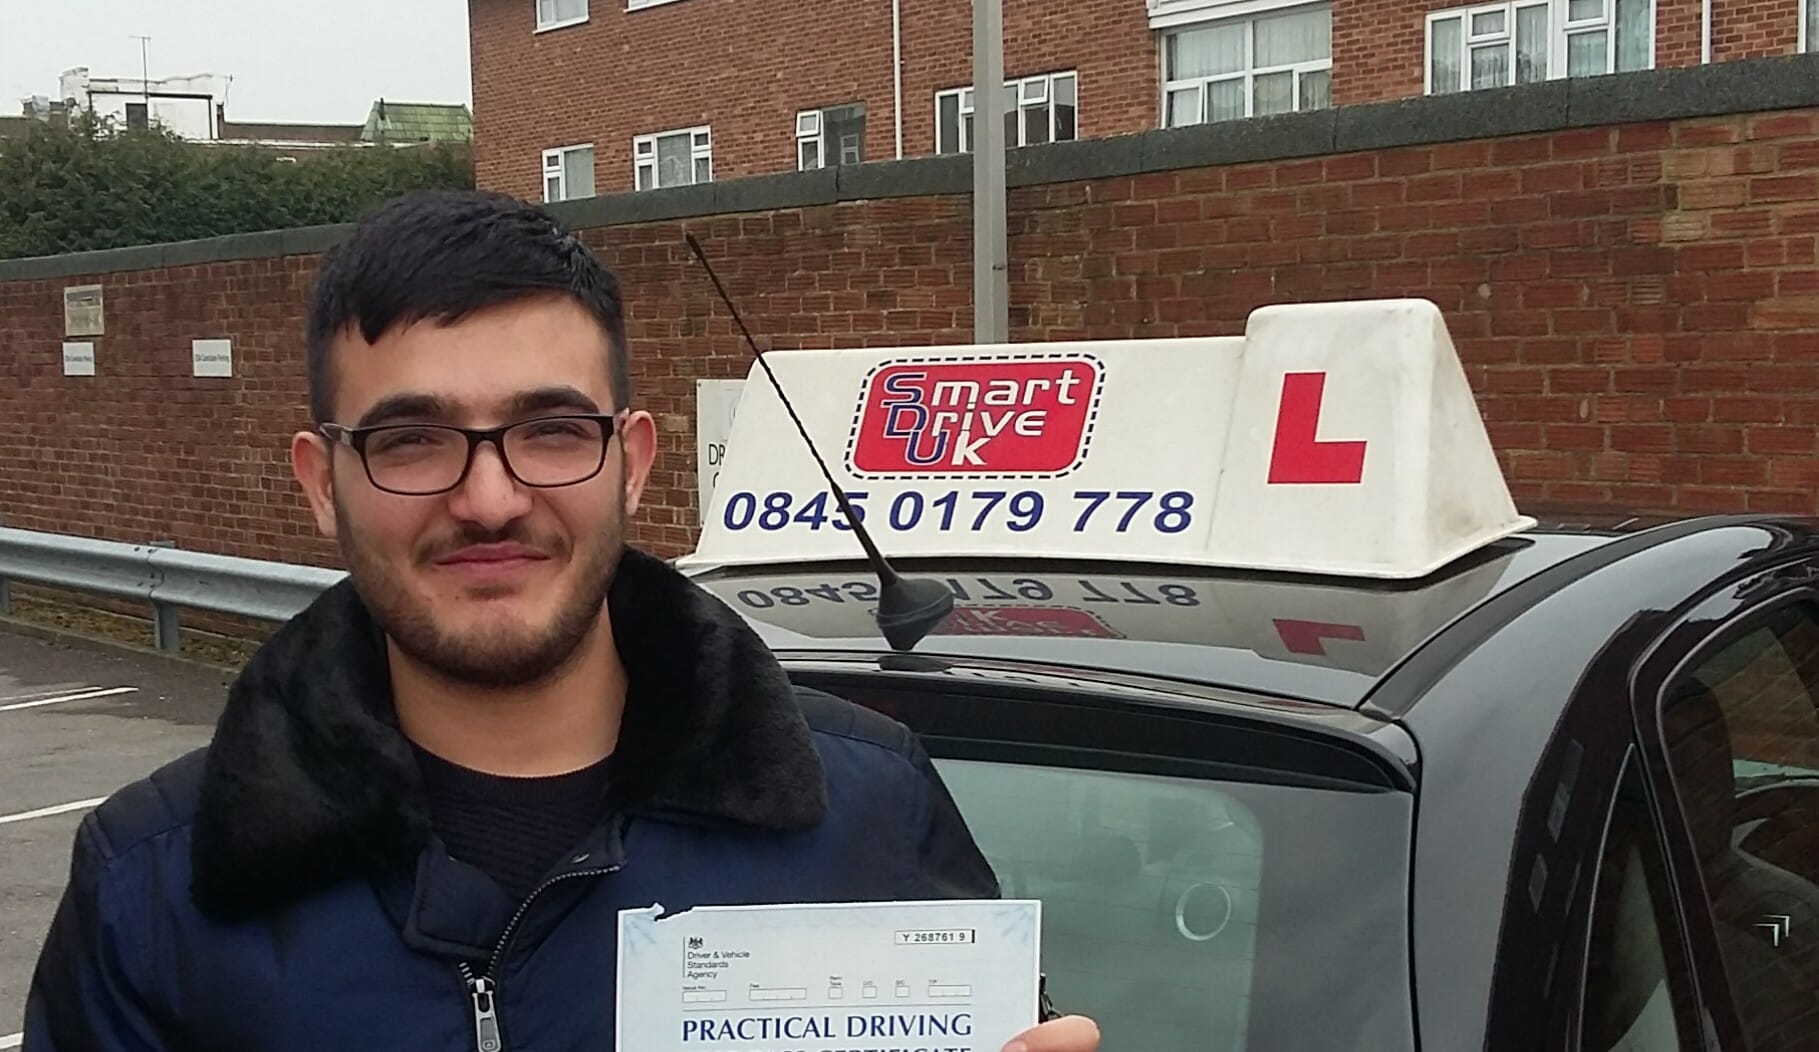 Congratulations to Irfan Mohammed from Worthing.